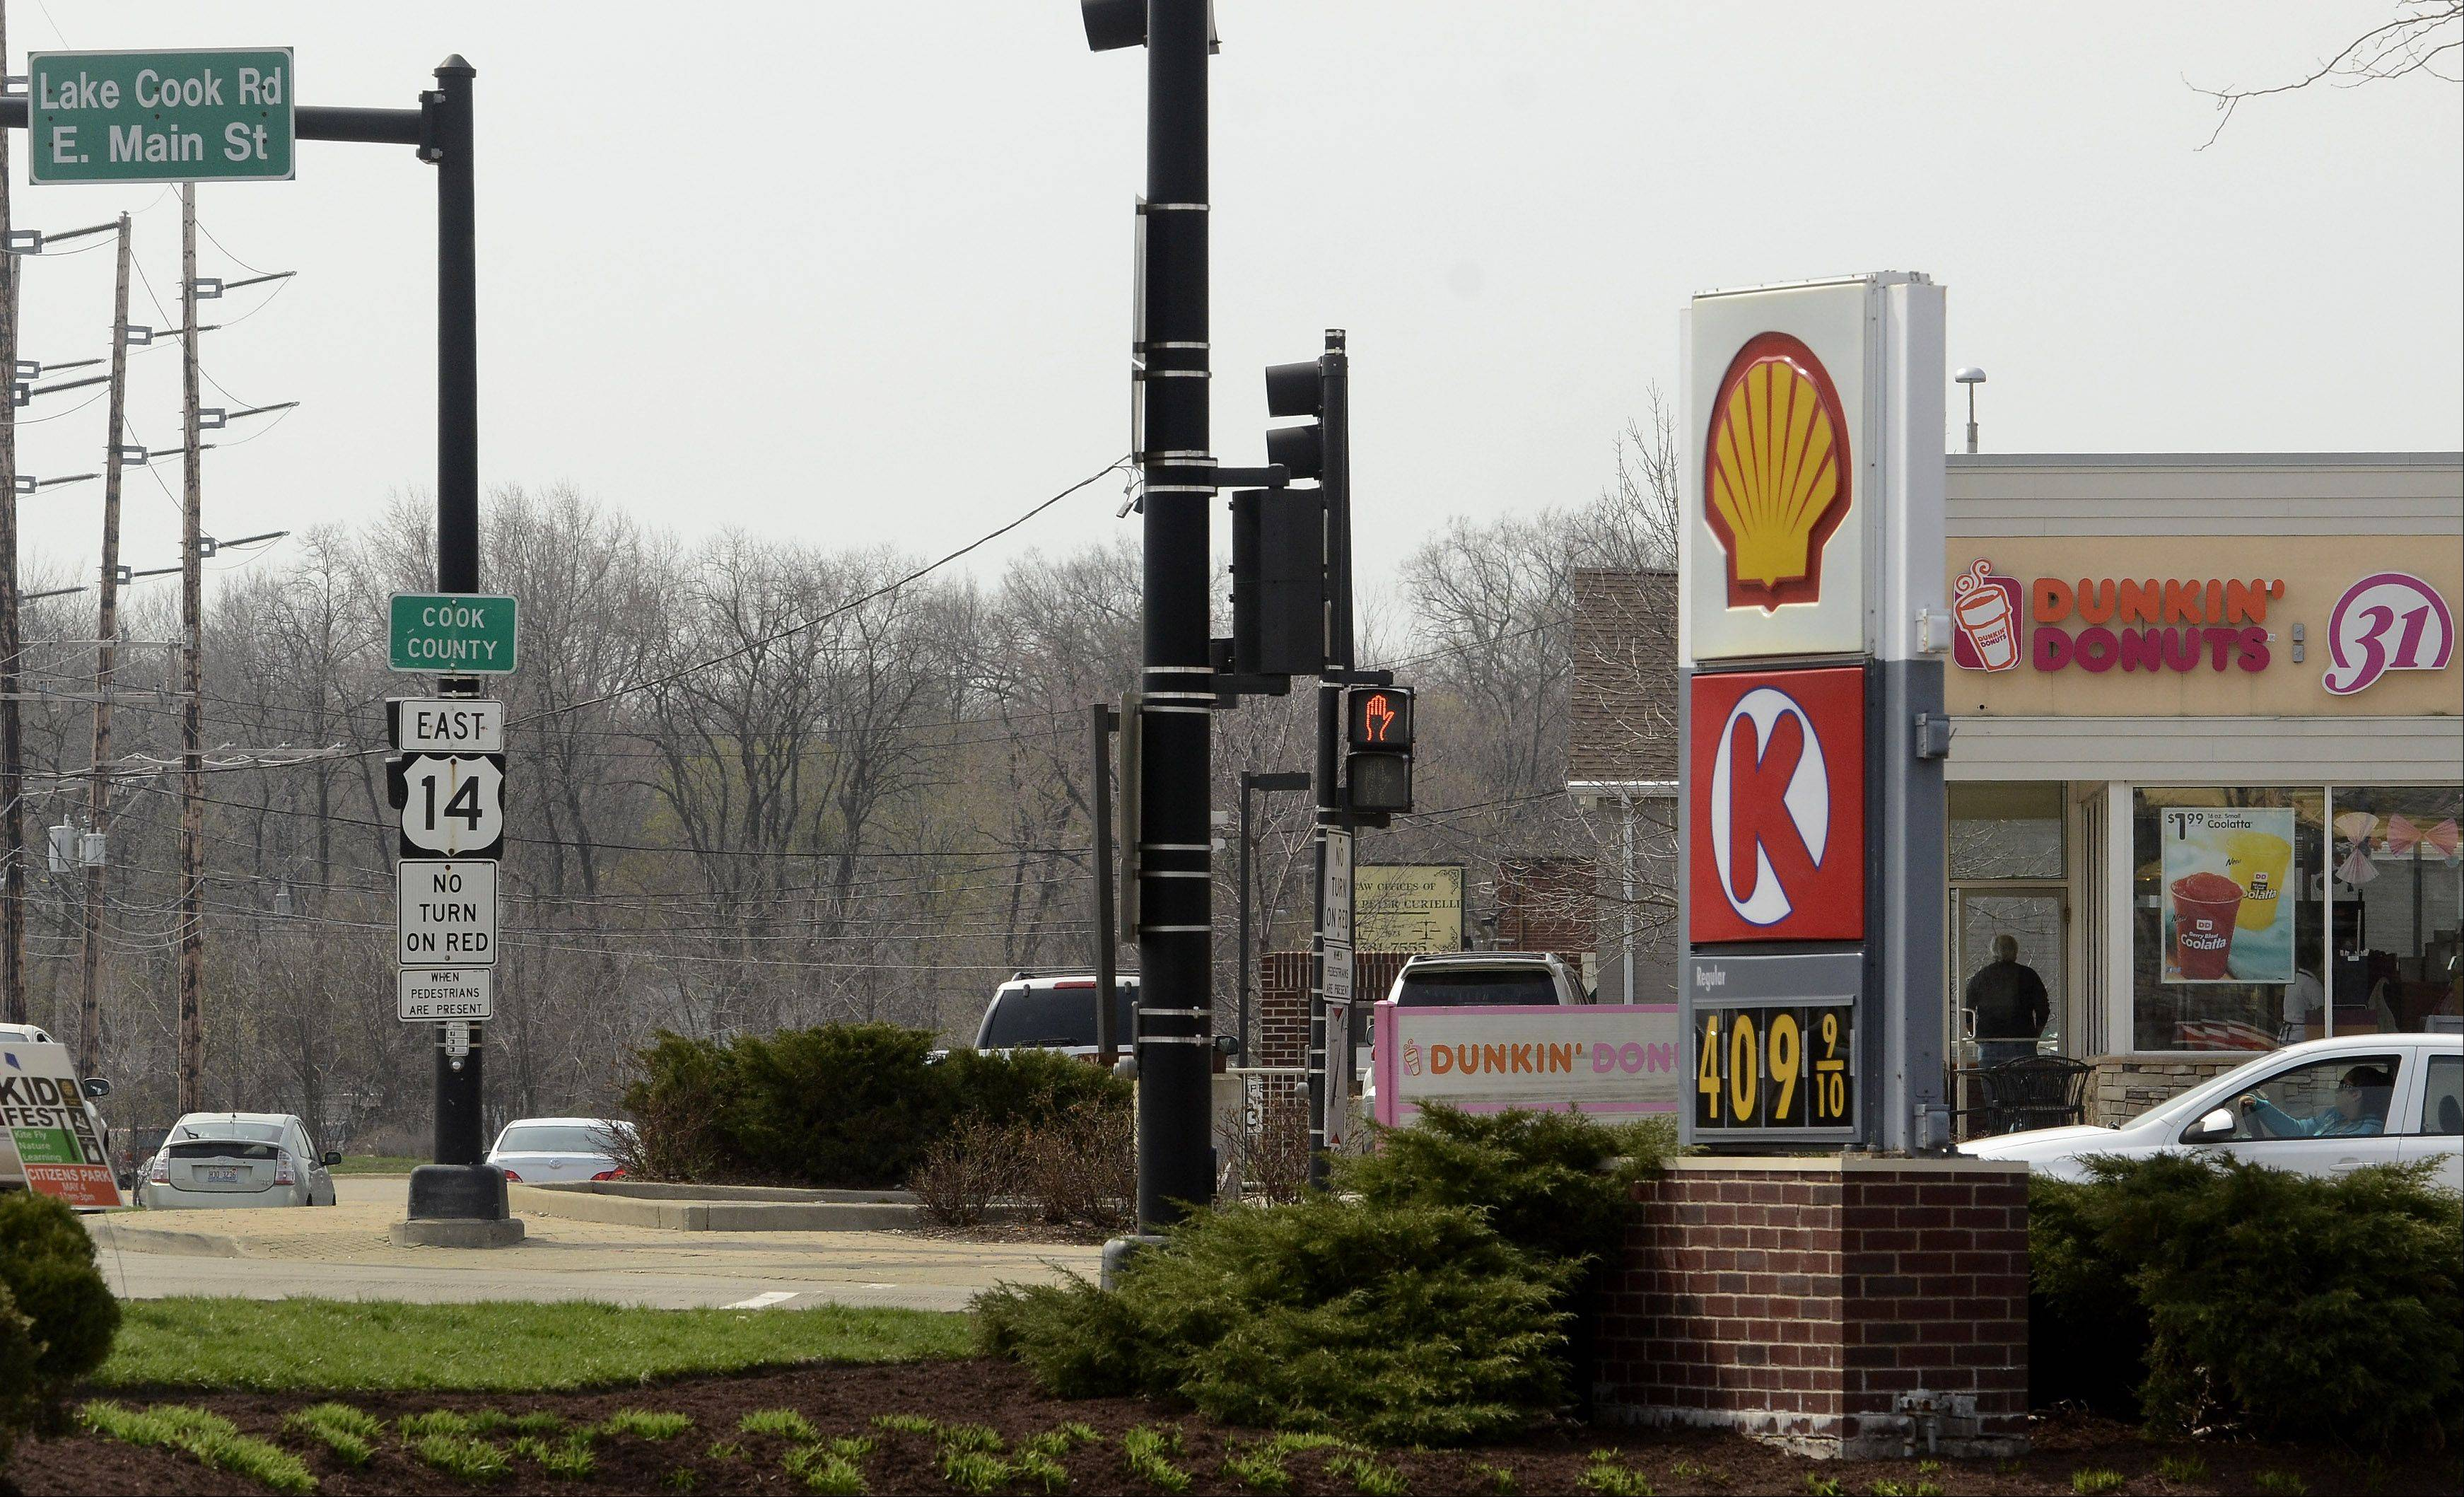 Under a proposal to allow concealed carry except in Cook County, customers of a Shell station on Lake-Cook Road in Barrington could legally carry weapons, while visitors to a Dunkin� Donuts across the street would be barred from carrying guns.